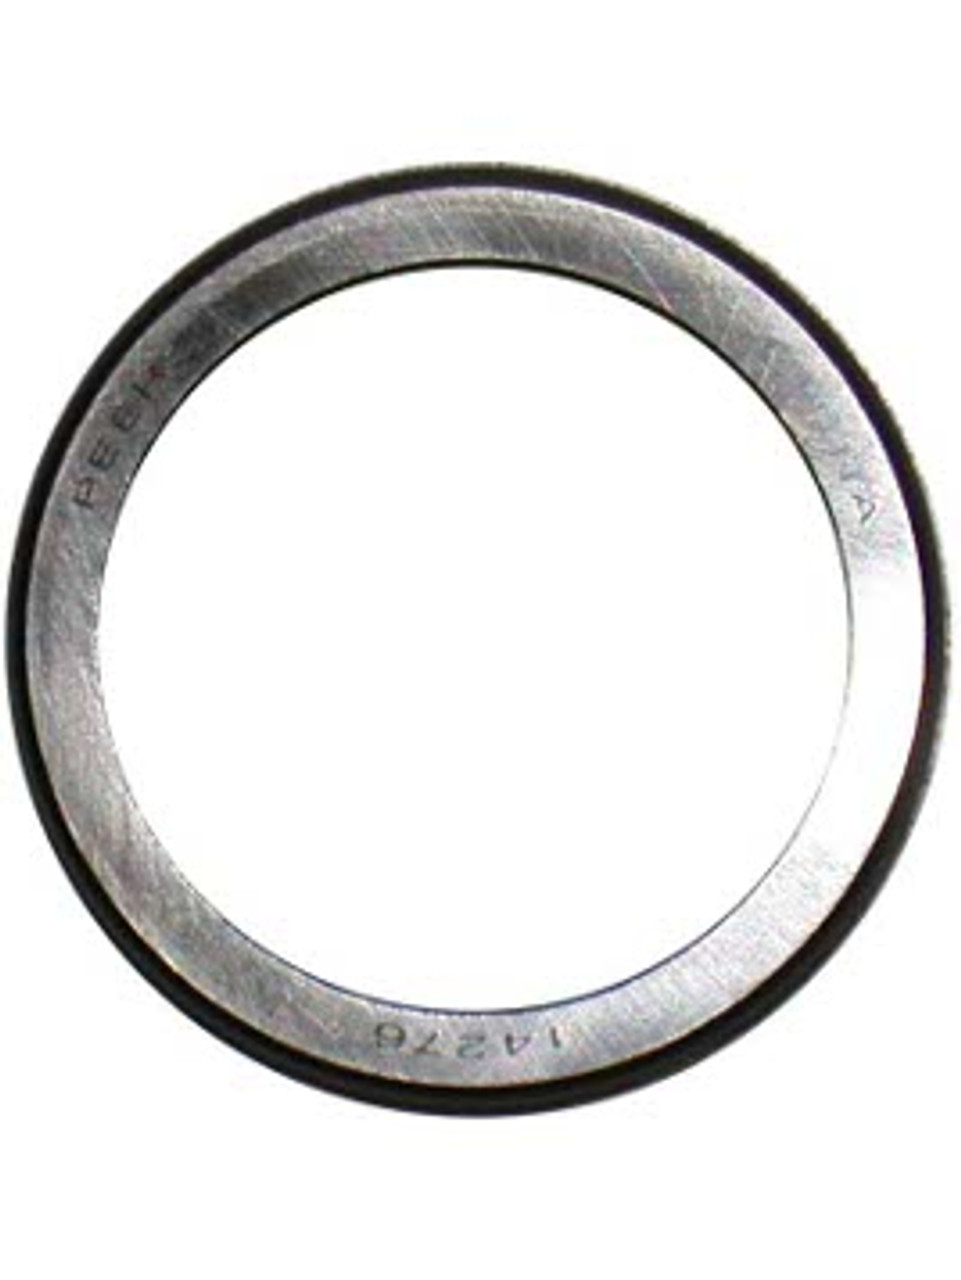 L44610 --- Race (Cup) for Bearing # L44643 and # L44649